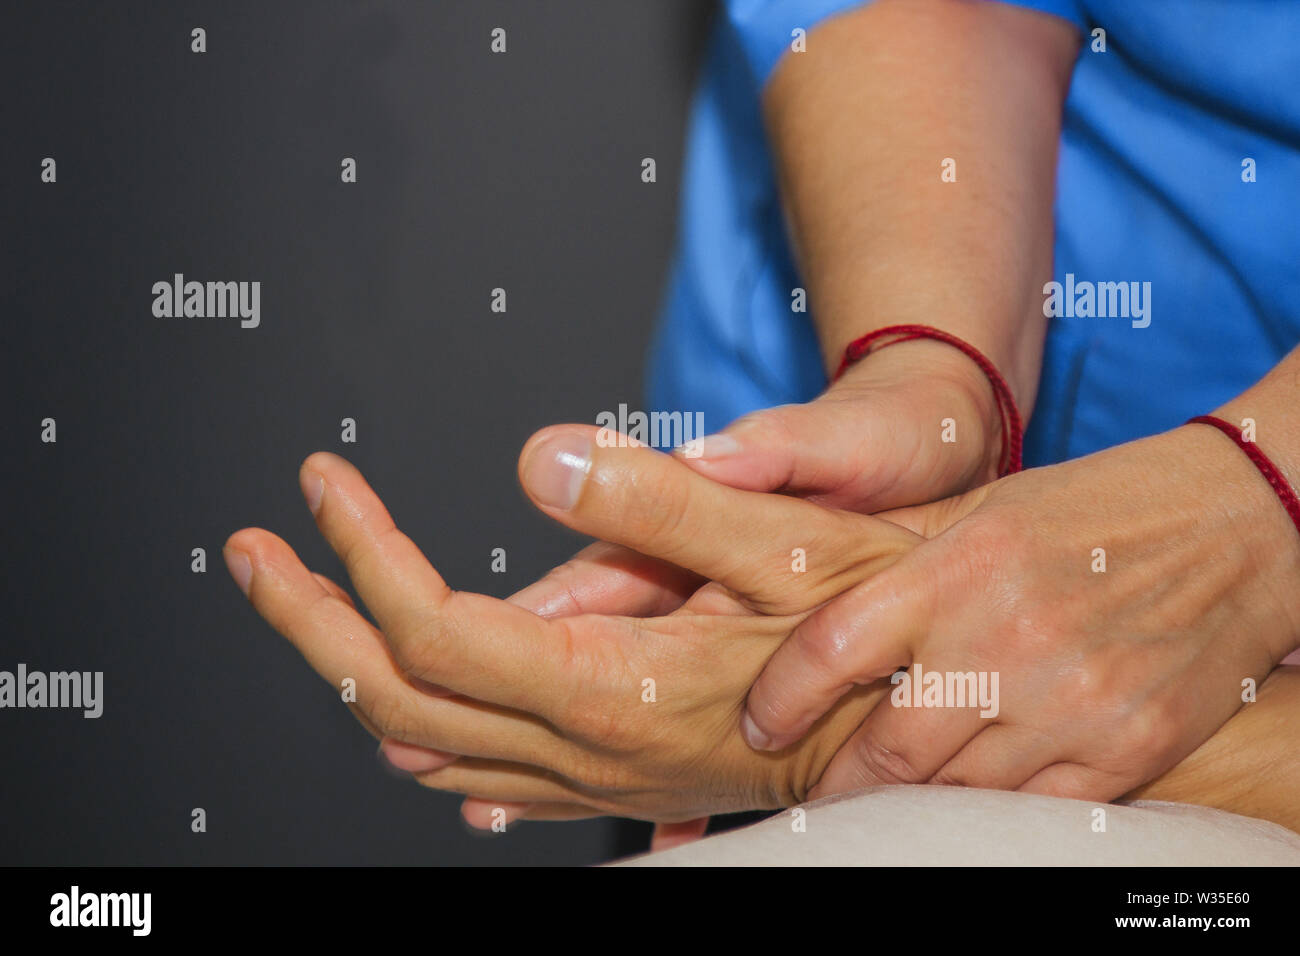 professional therapeutic massage of the hands and palms. woman doctor massages a man athlete in a massage room. body and health care. procedure for re - Stock Image